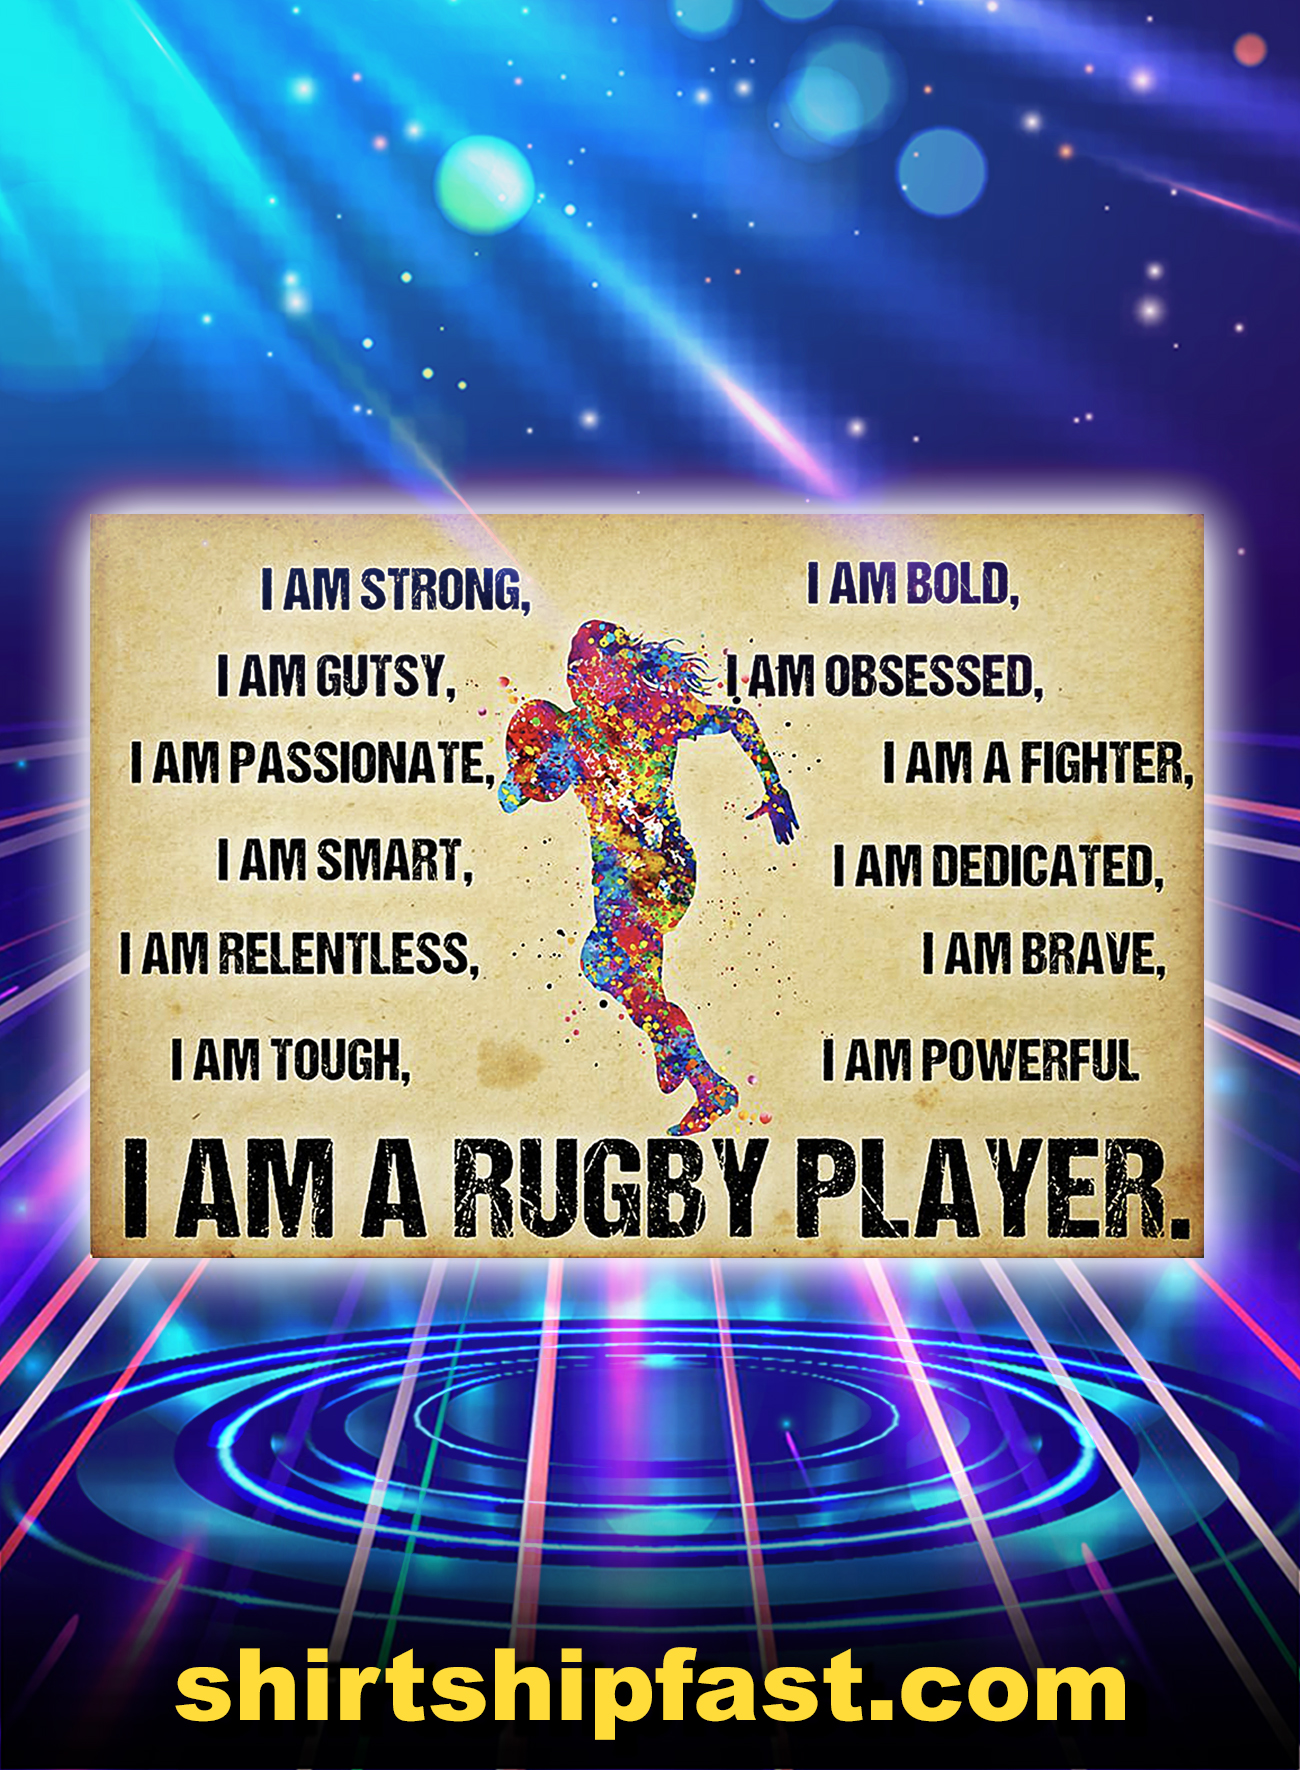 I am a rugby player poster - A4